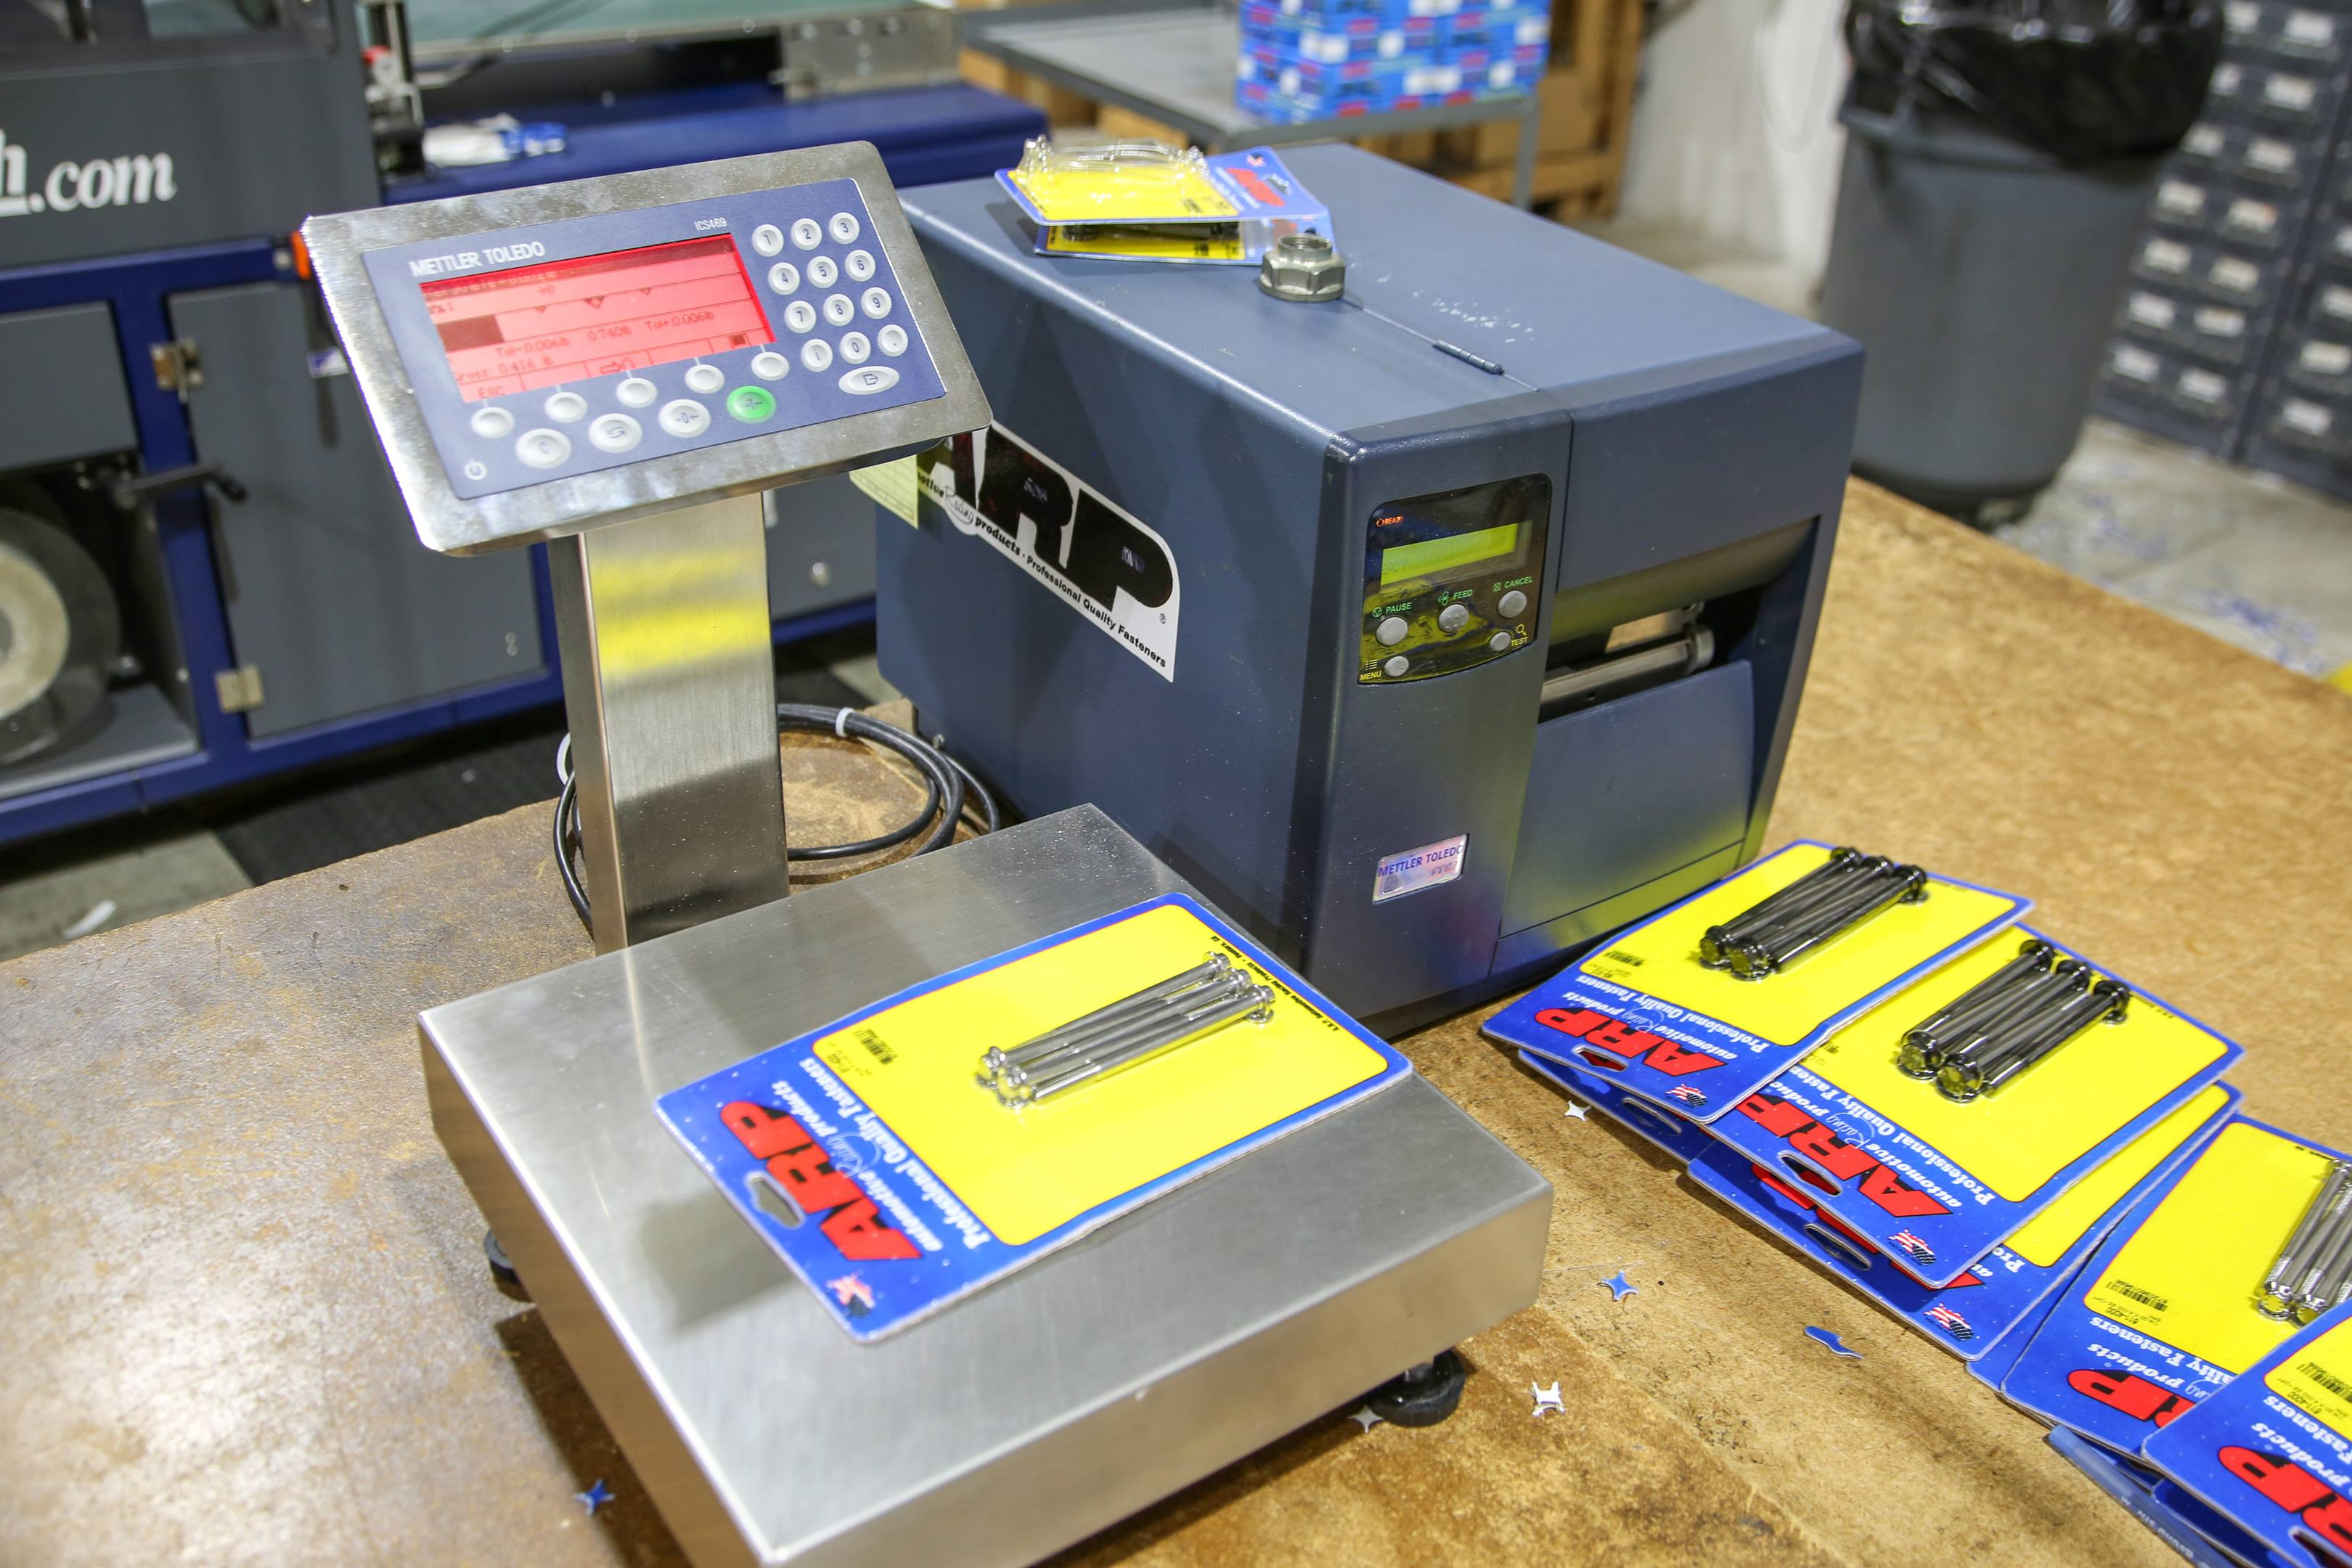 The final stage of production is packaging, where parts receive their label. This scale ensures that each package has the proper components before the corresponding label is printed.